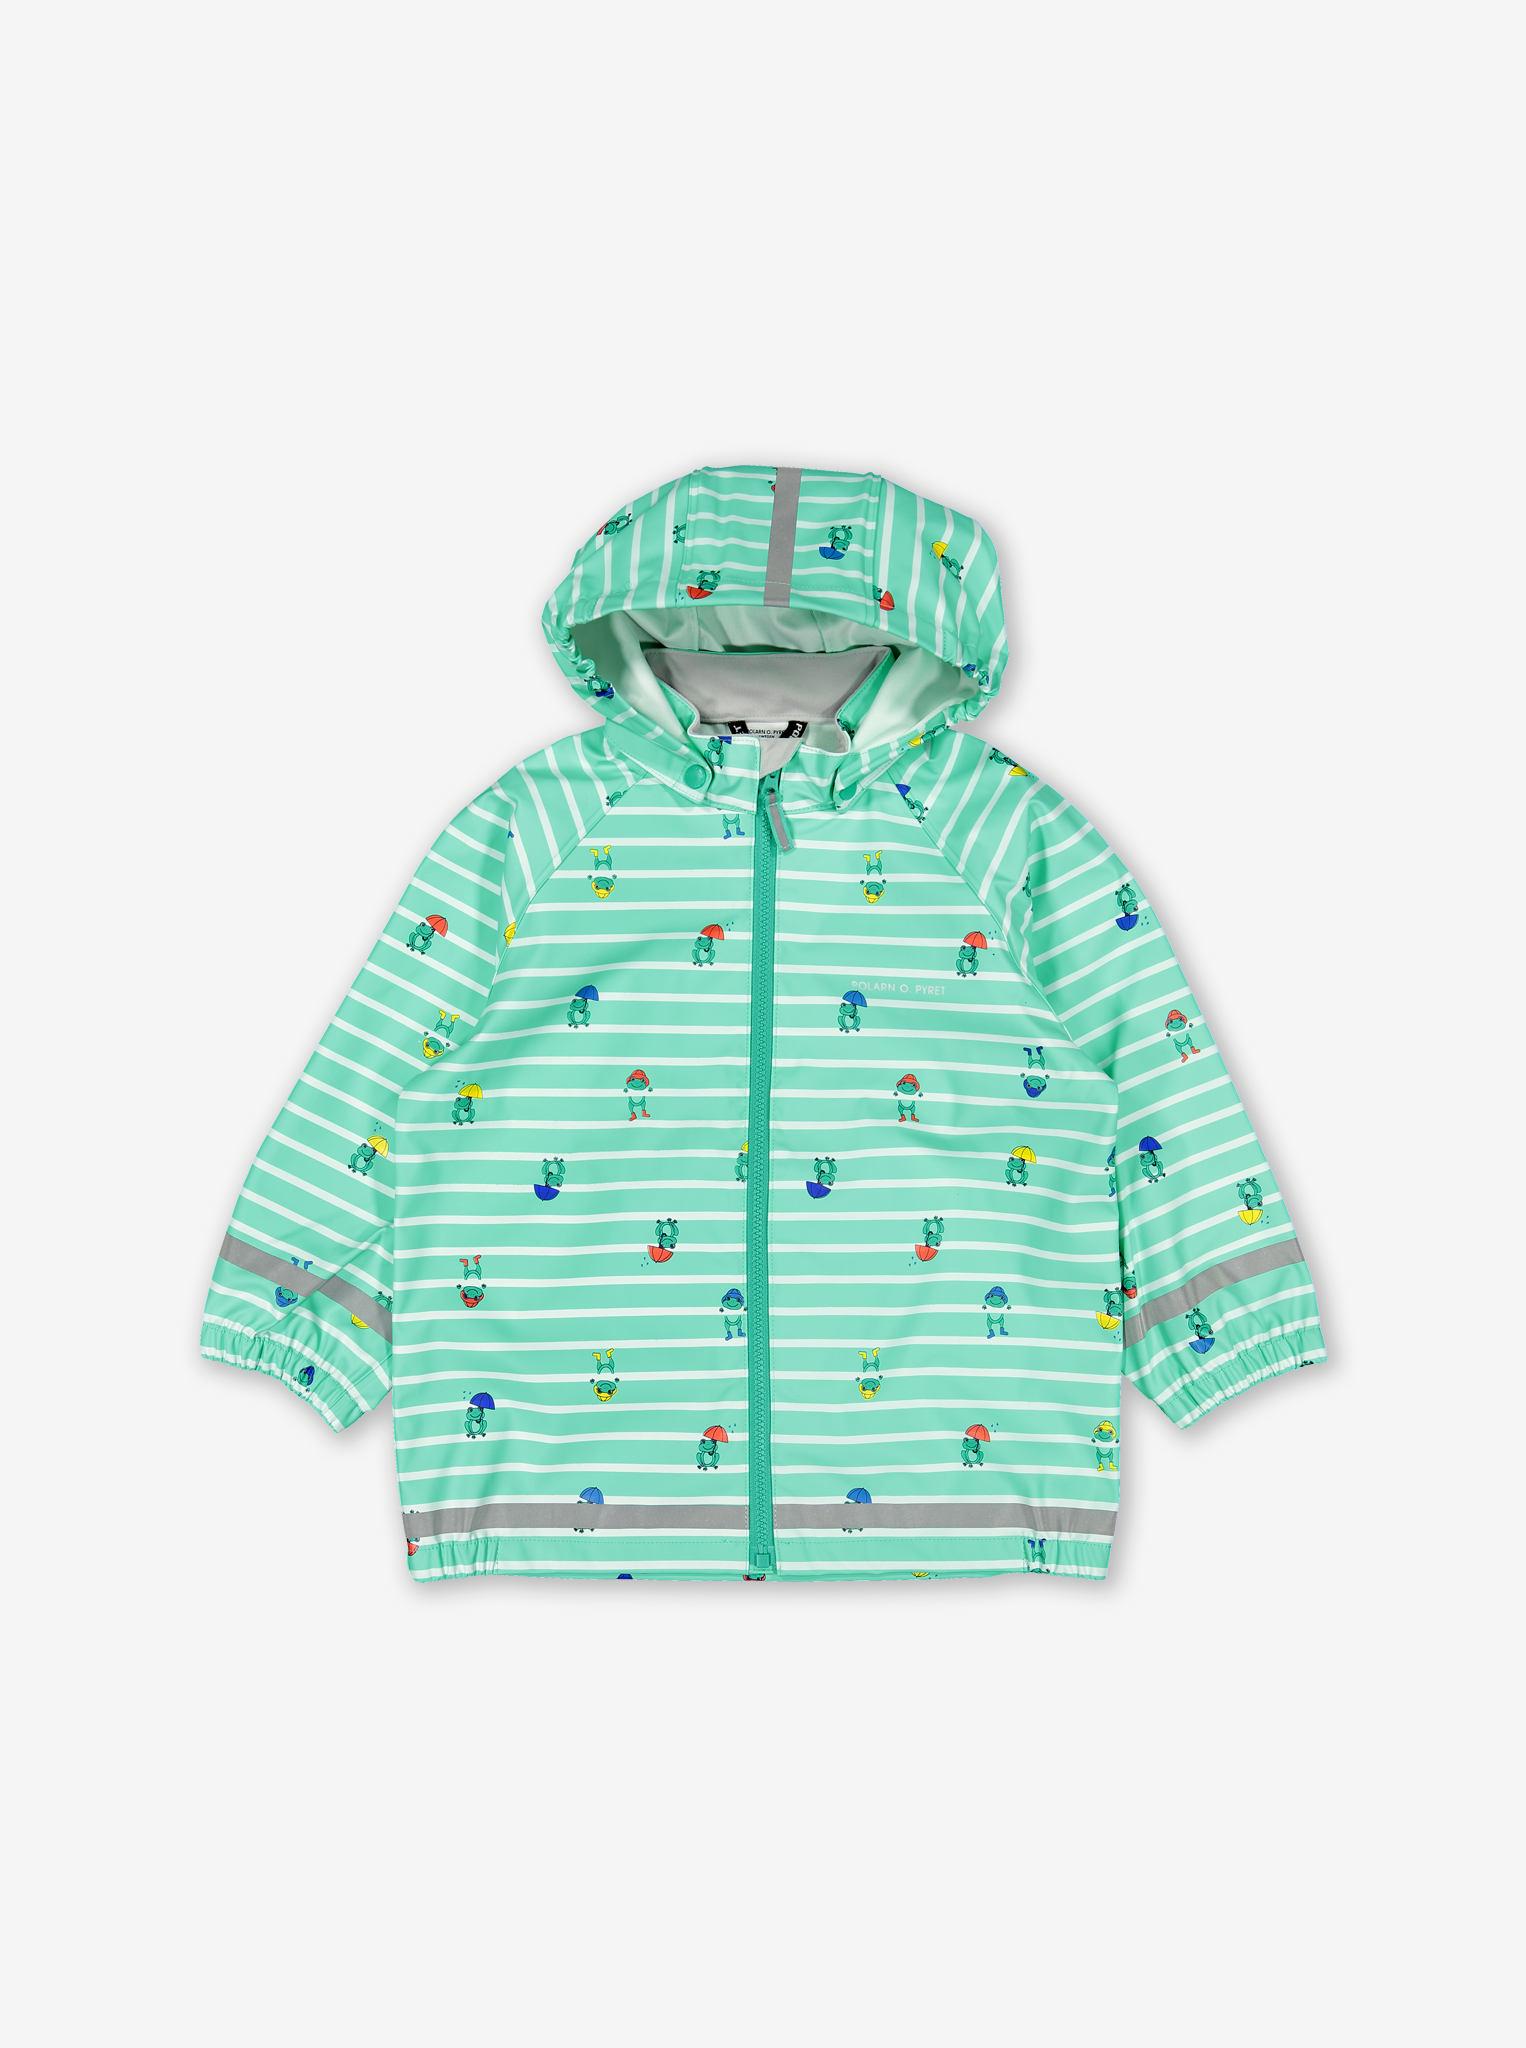 Green, kids raincoat with frog & stripes pattern, made of polyester, and comes with a detachable hood and elastic cuffs